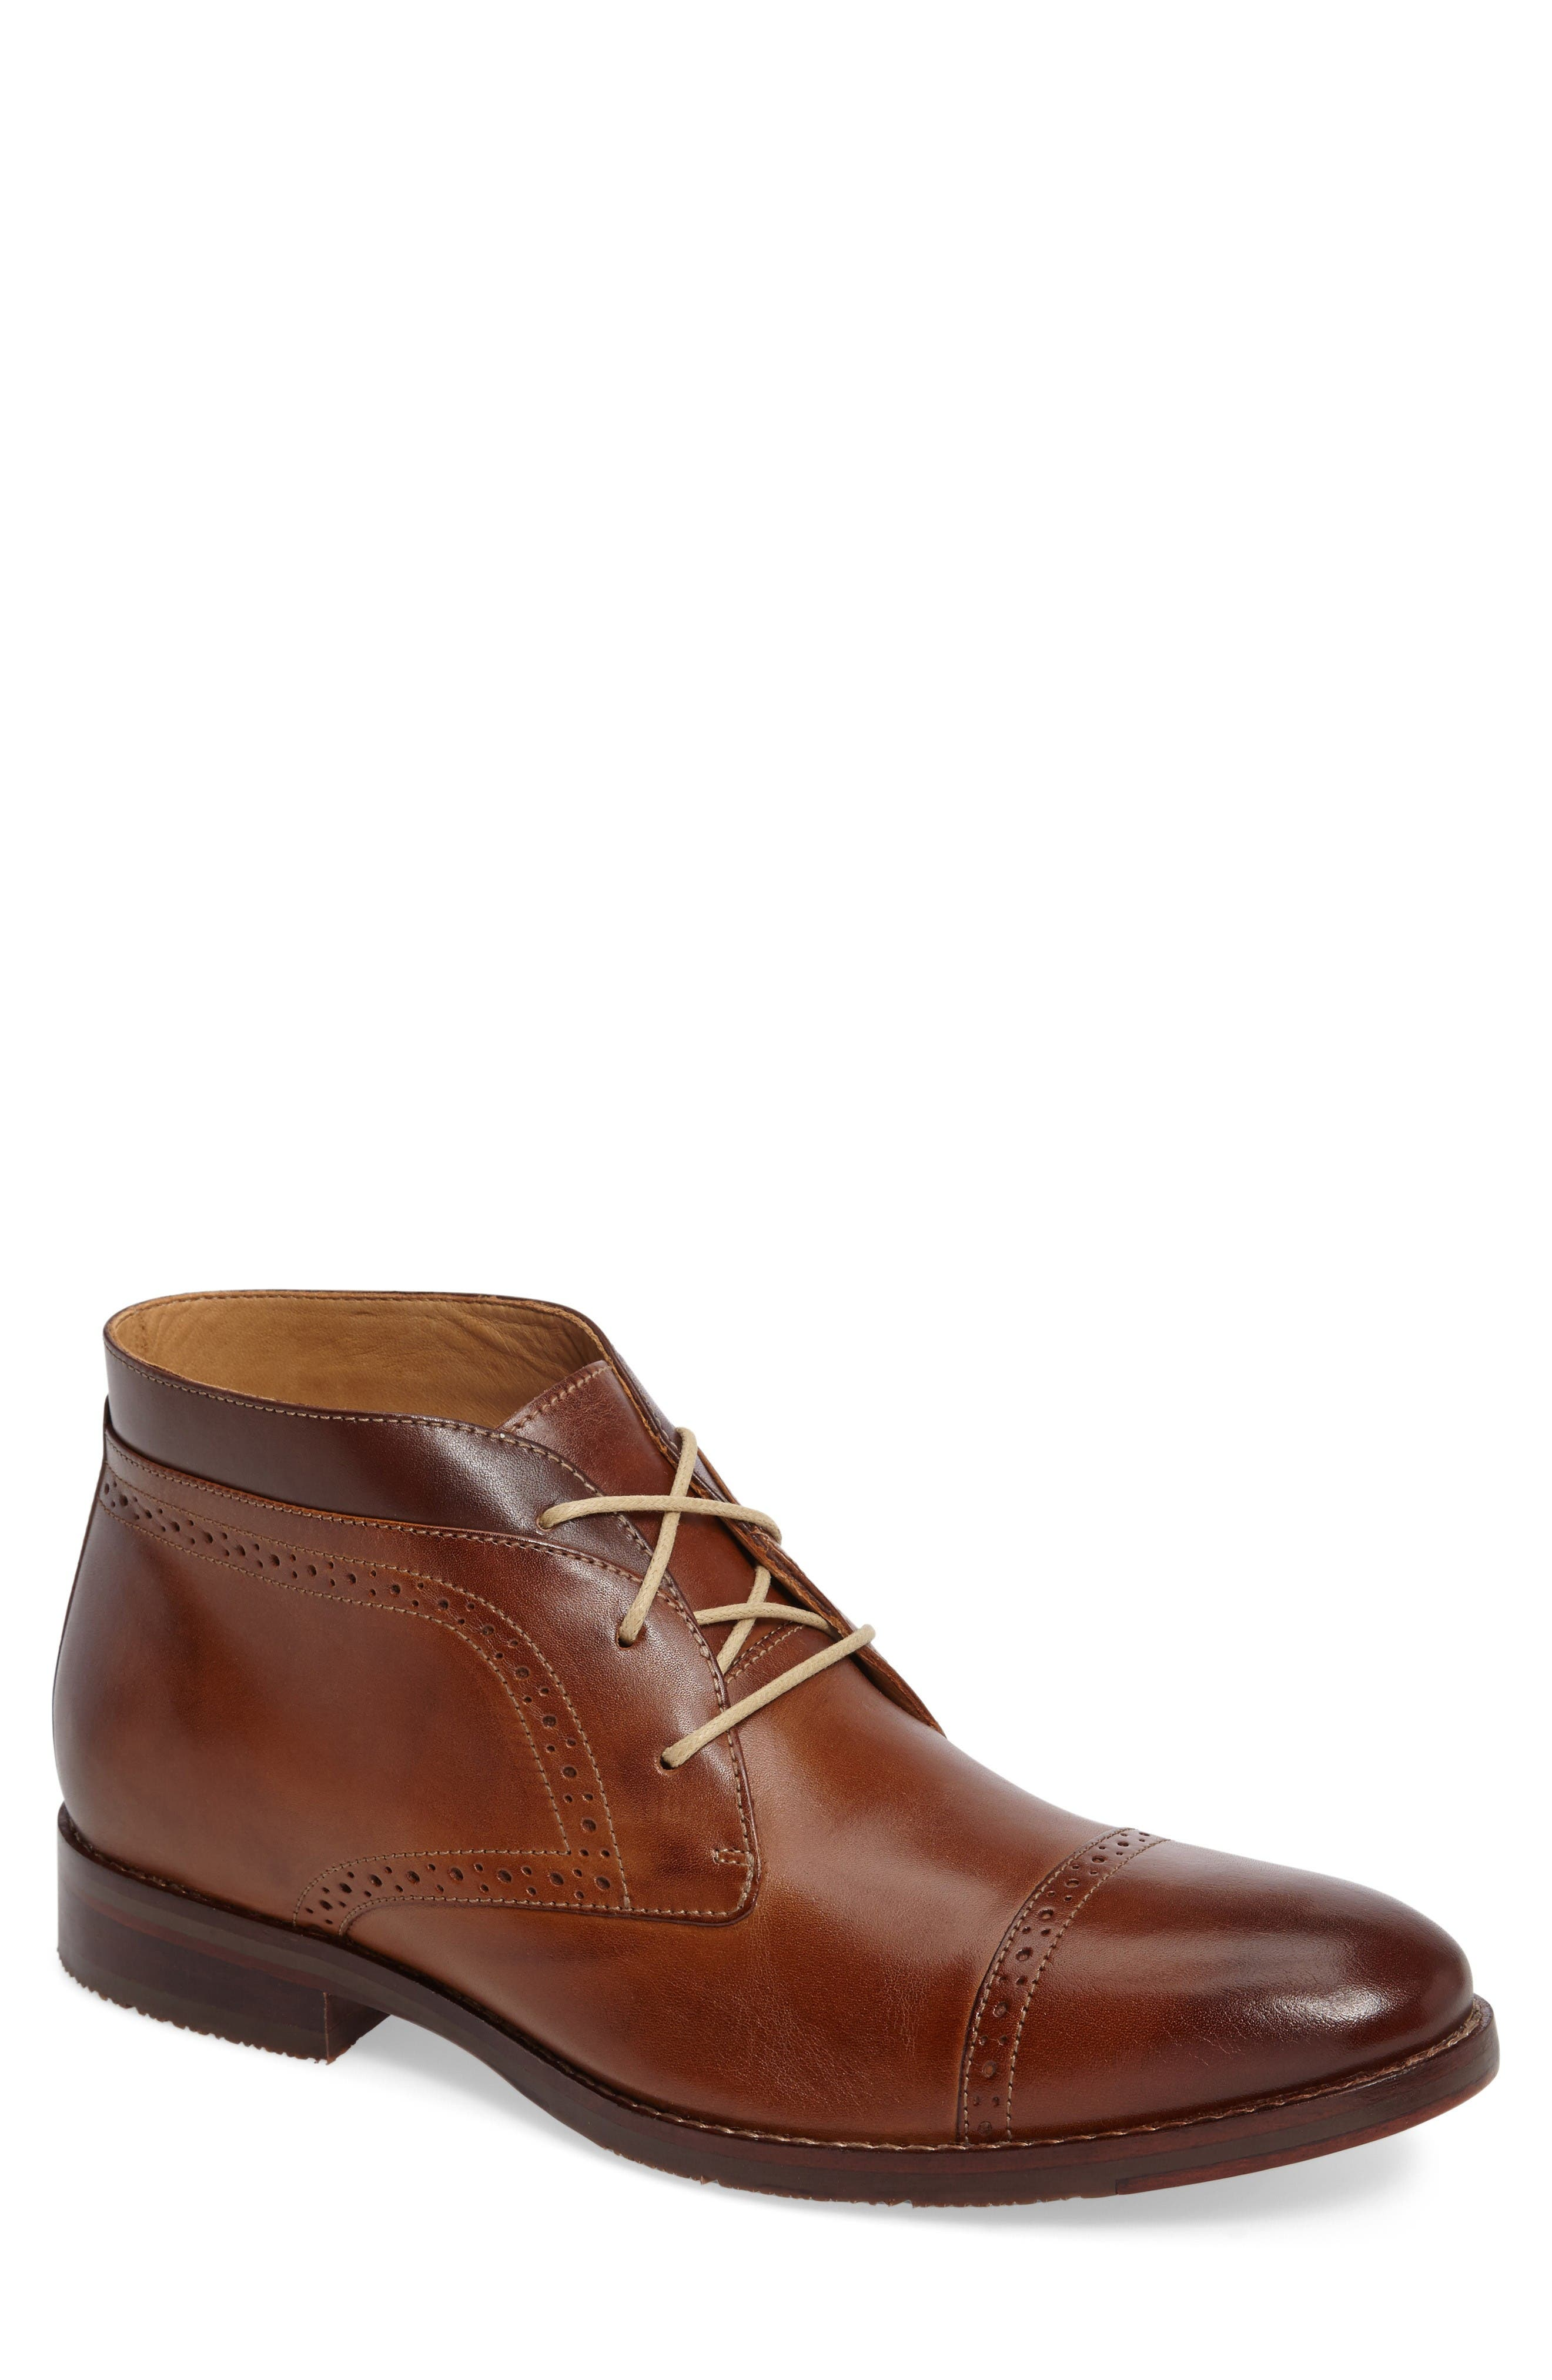 Johnston & Murphy Garner Cap Toe Chukka Boot (Men)